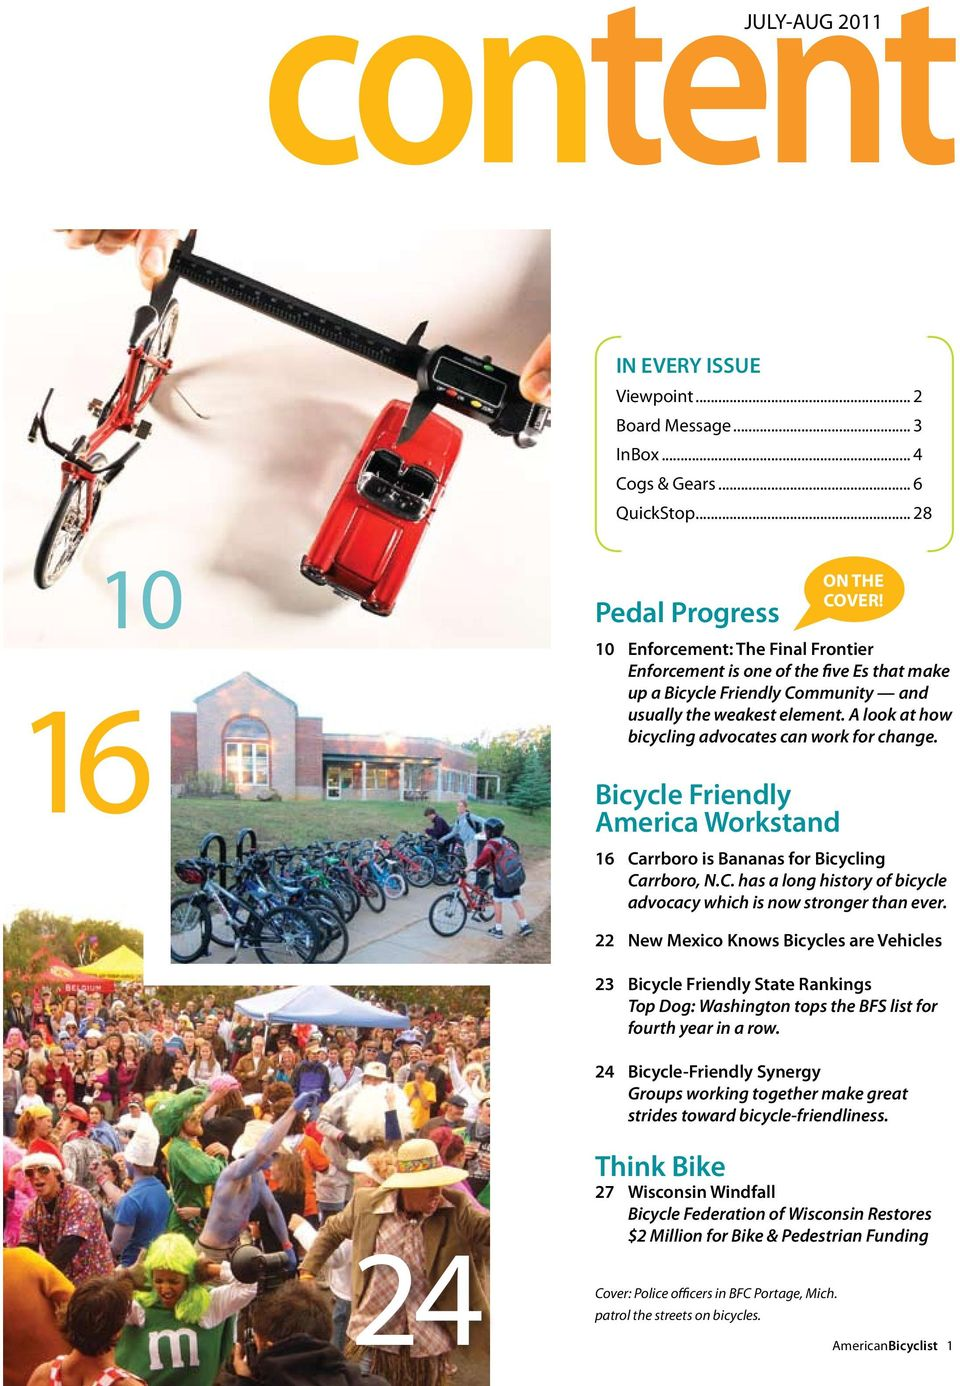 A look at how bicycling advocates can work for change. Bicycle Friendly America Workstand ON THE COVER! 16 Carrboro is Bananas for Bicycling Carrboro, N.C. has a long history of bicycle advocacy which is now stronger than ever.